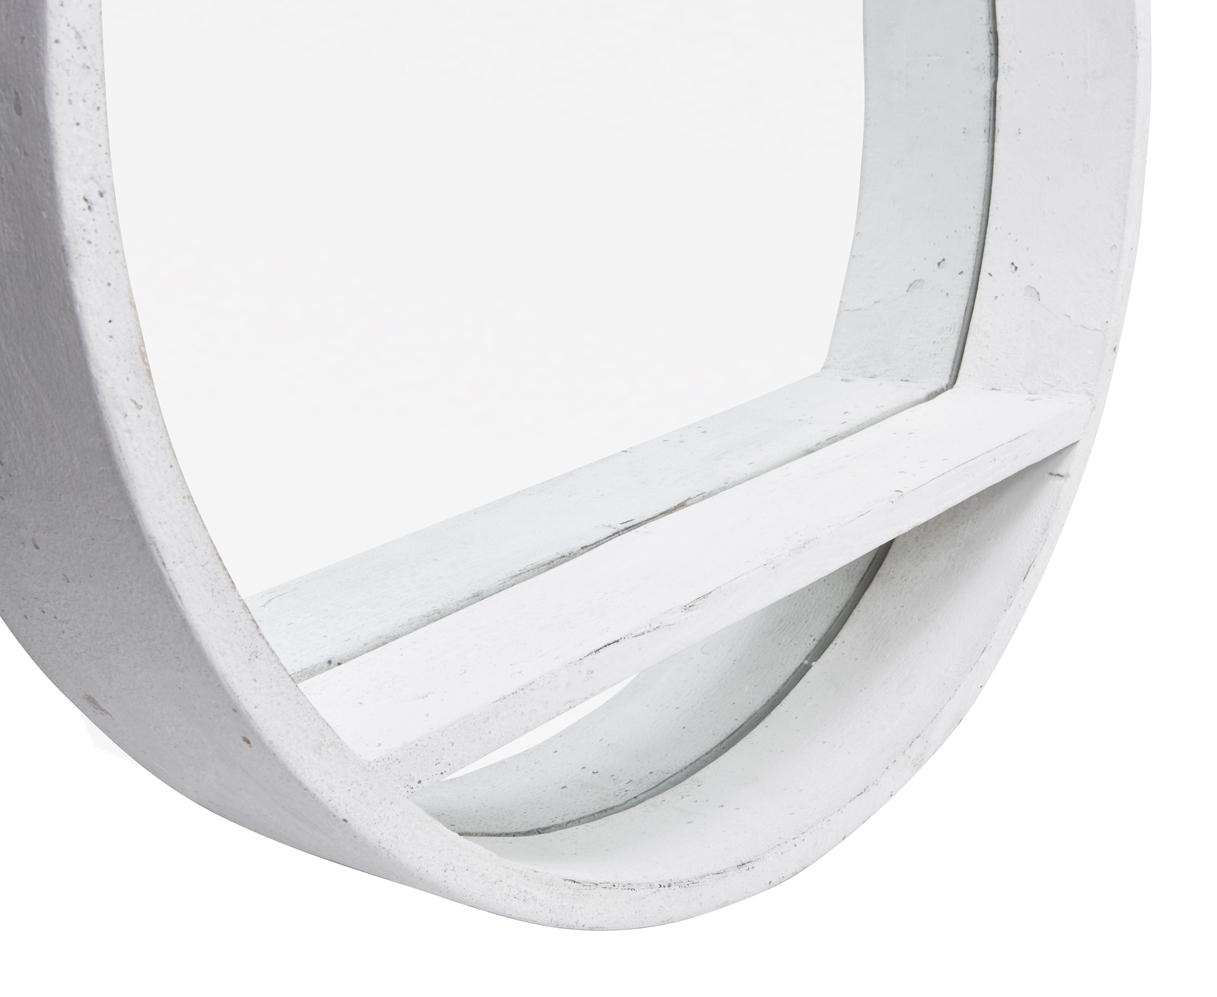 Hula Mirror In White | Round Wall Mirror | Loaf In Round White Mirror (Image 5 of 20)